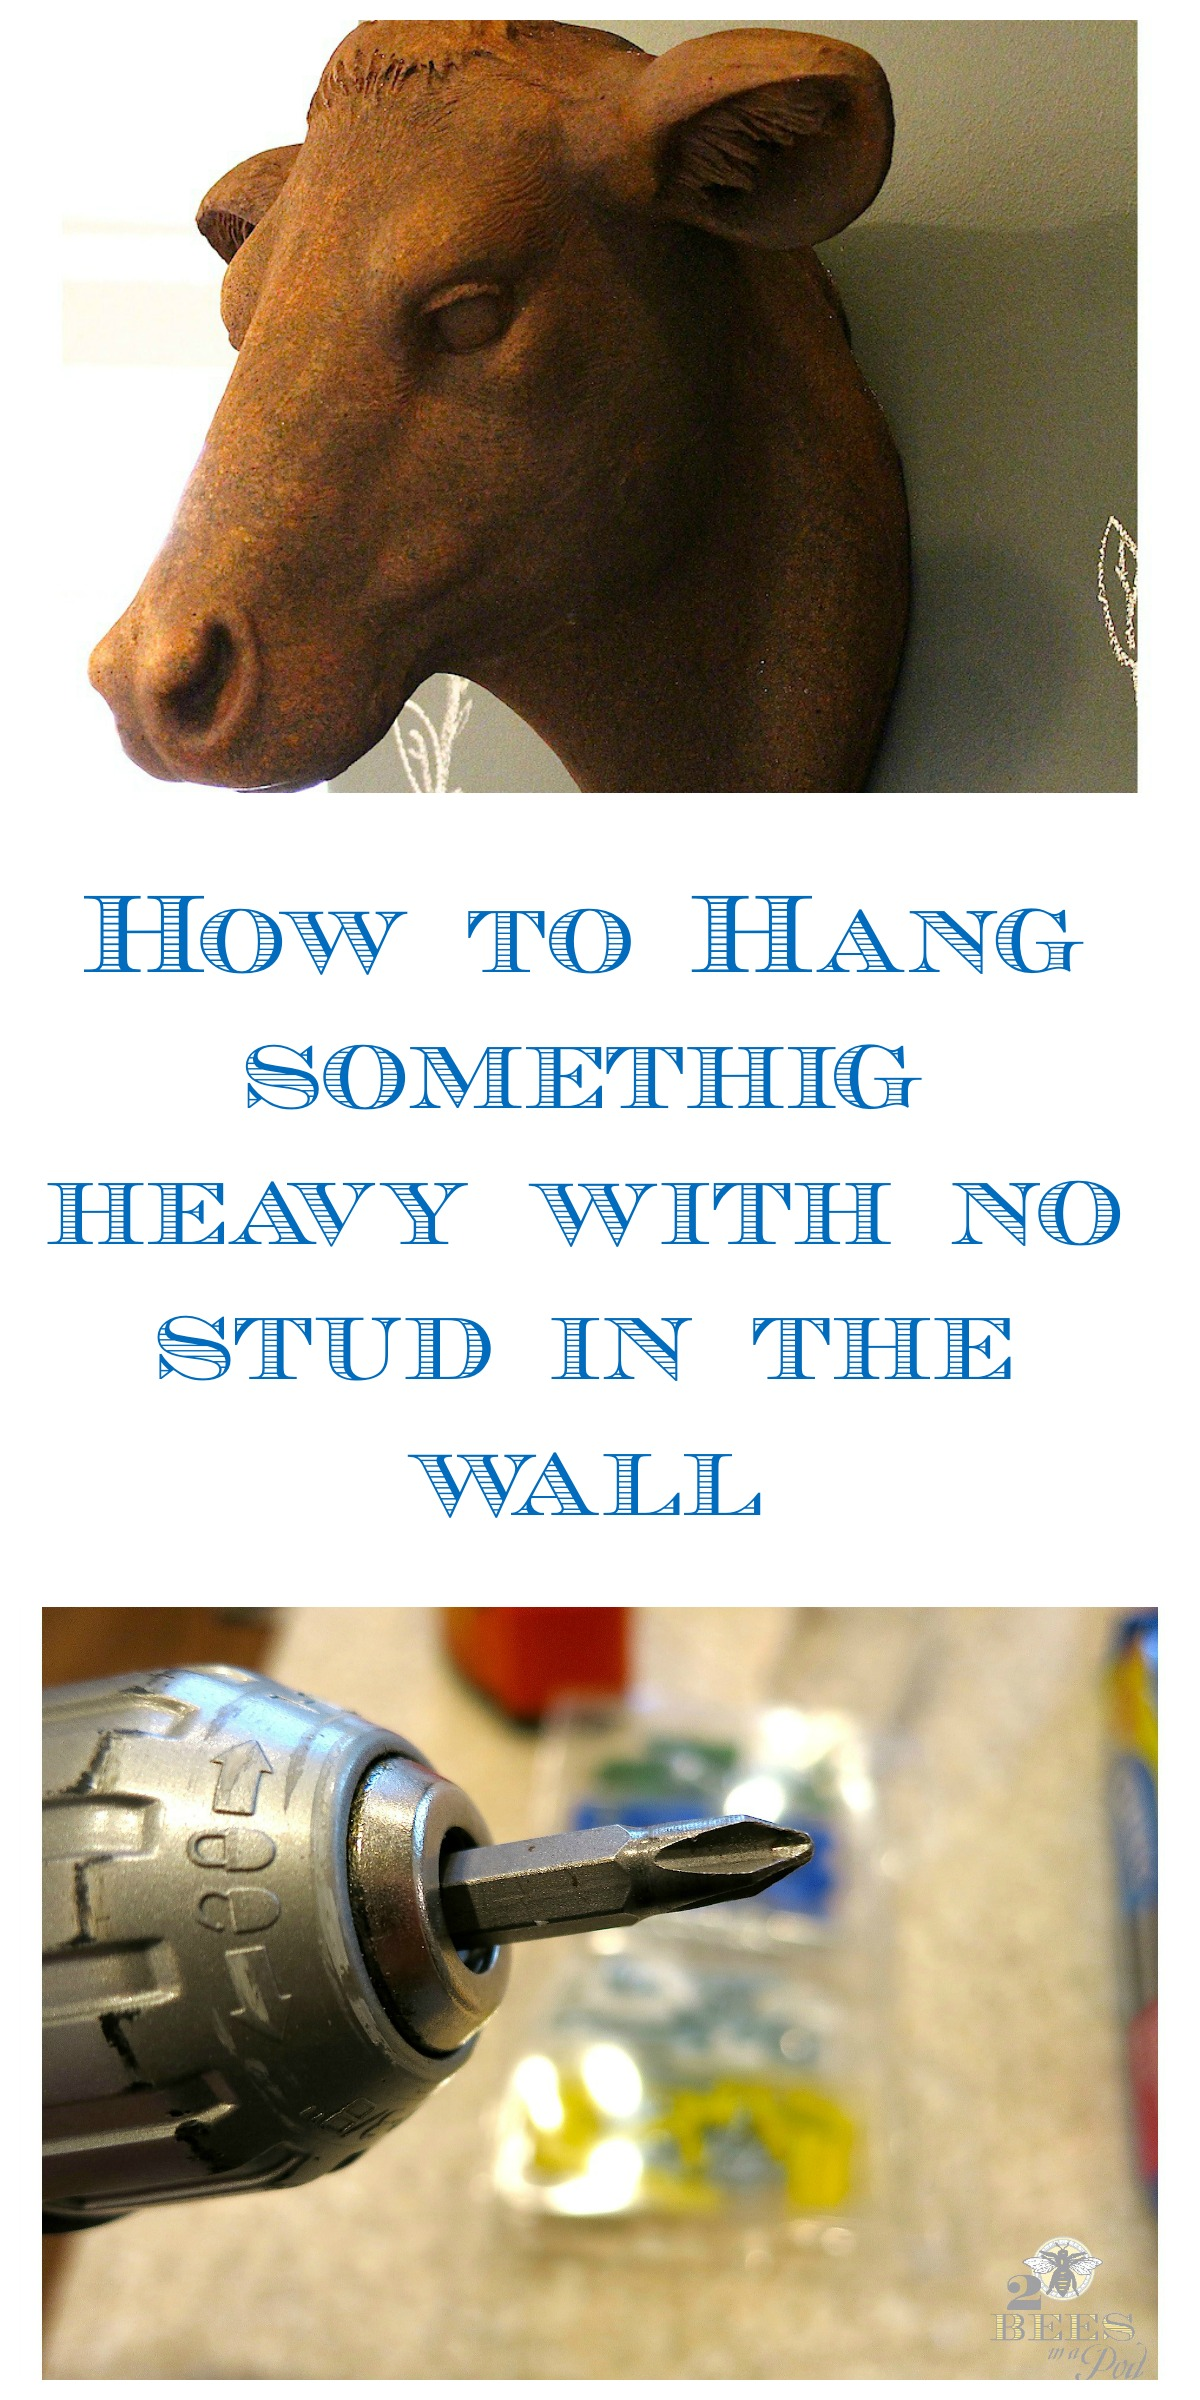 It is possible to hang something heavy on your wall with no stud. This way will also help avoid damage to your way.